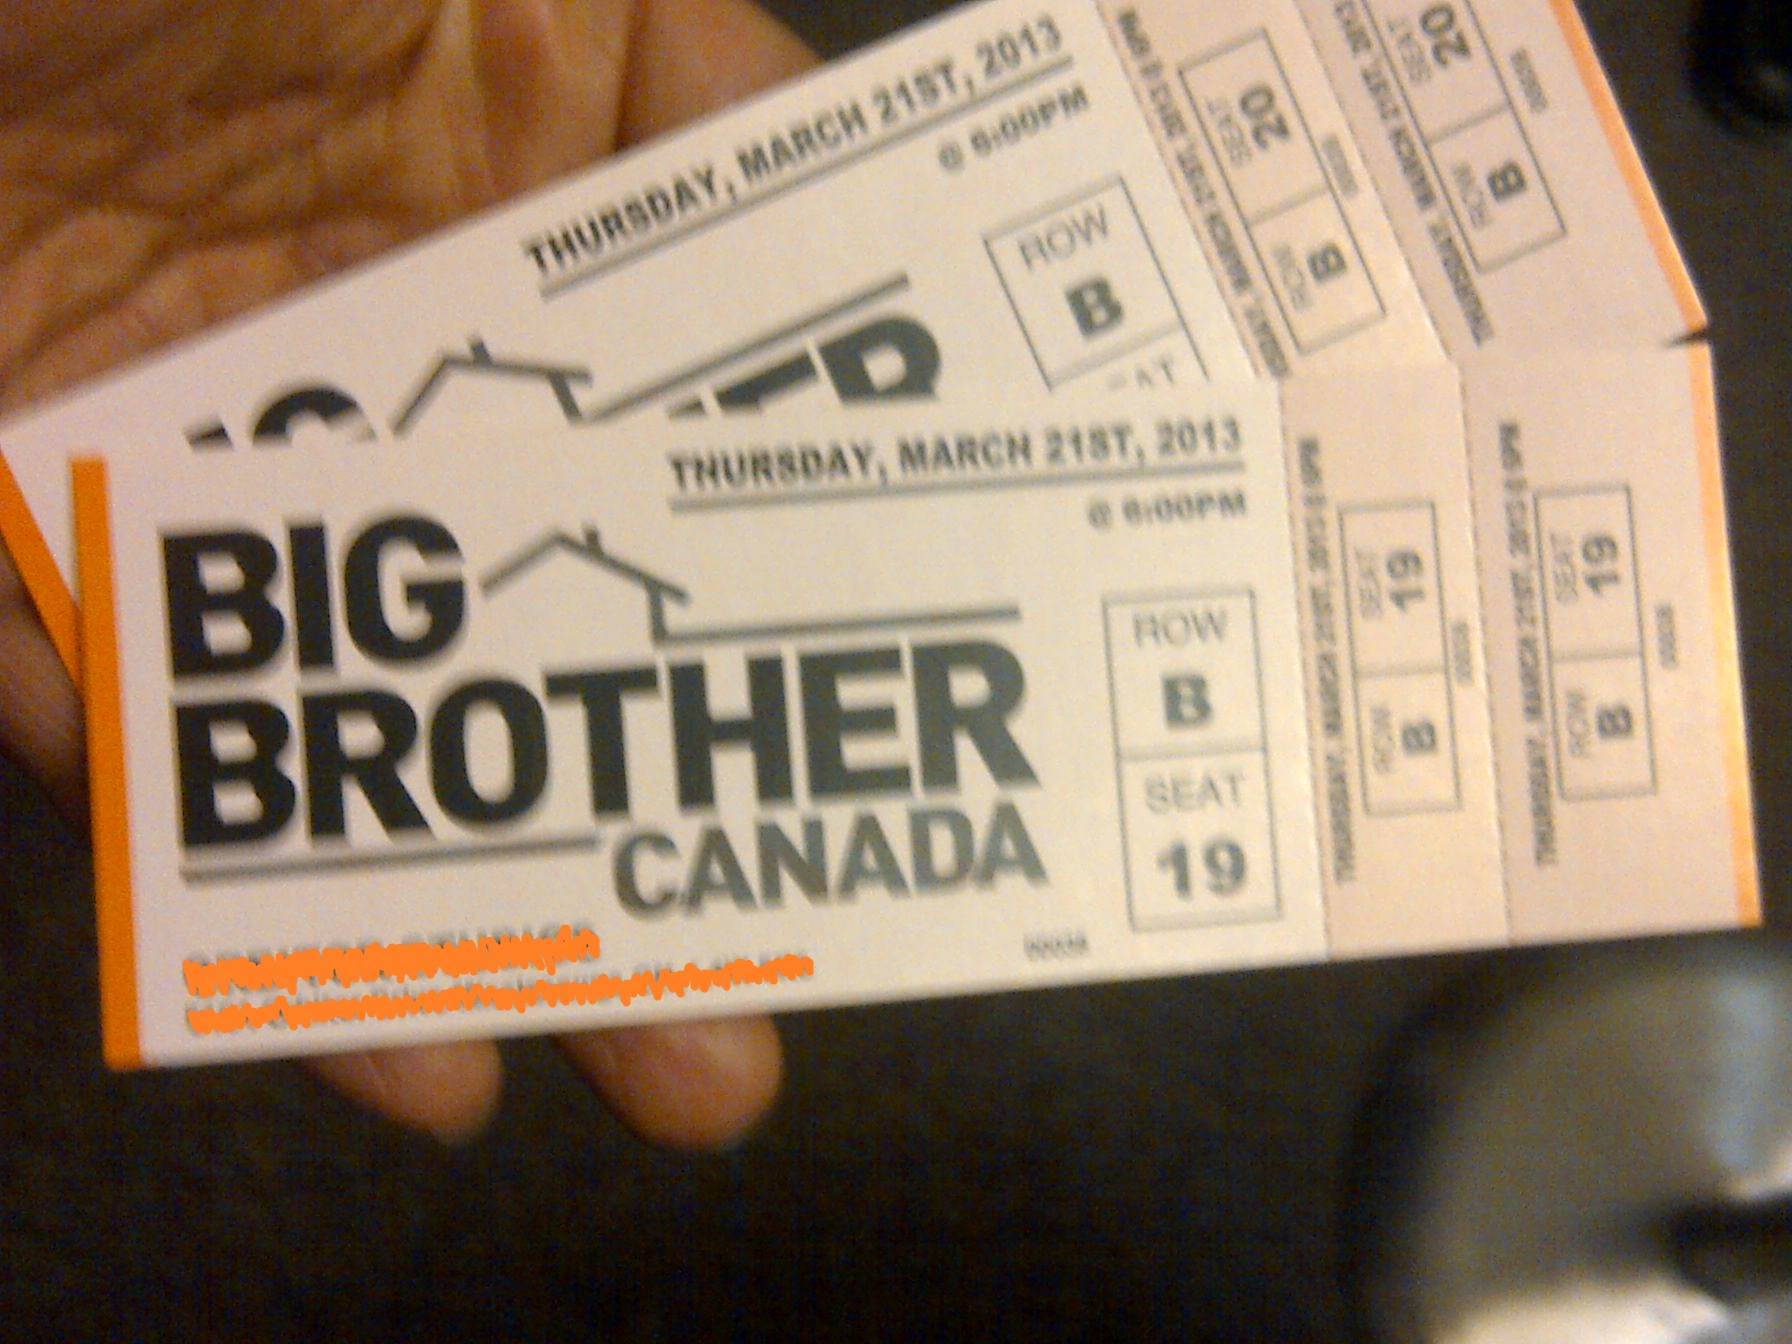 big brother tickets